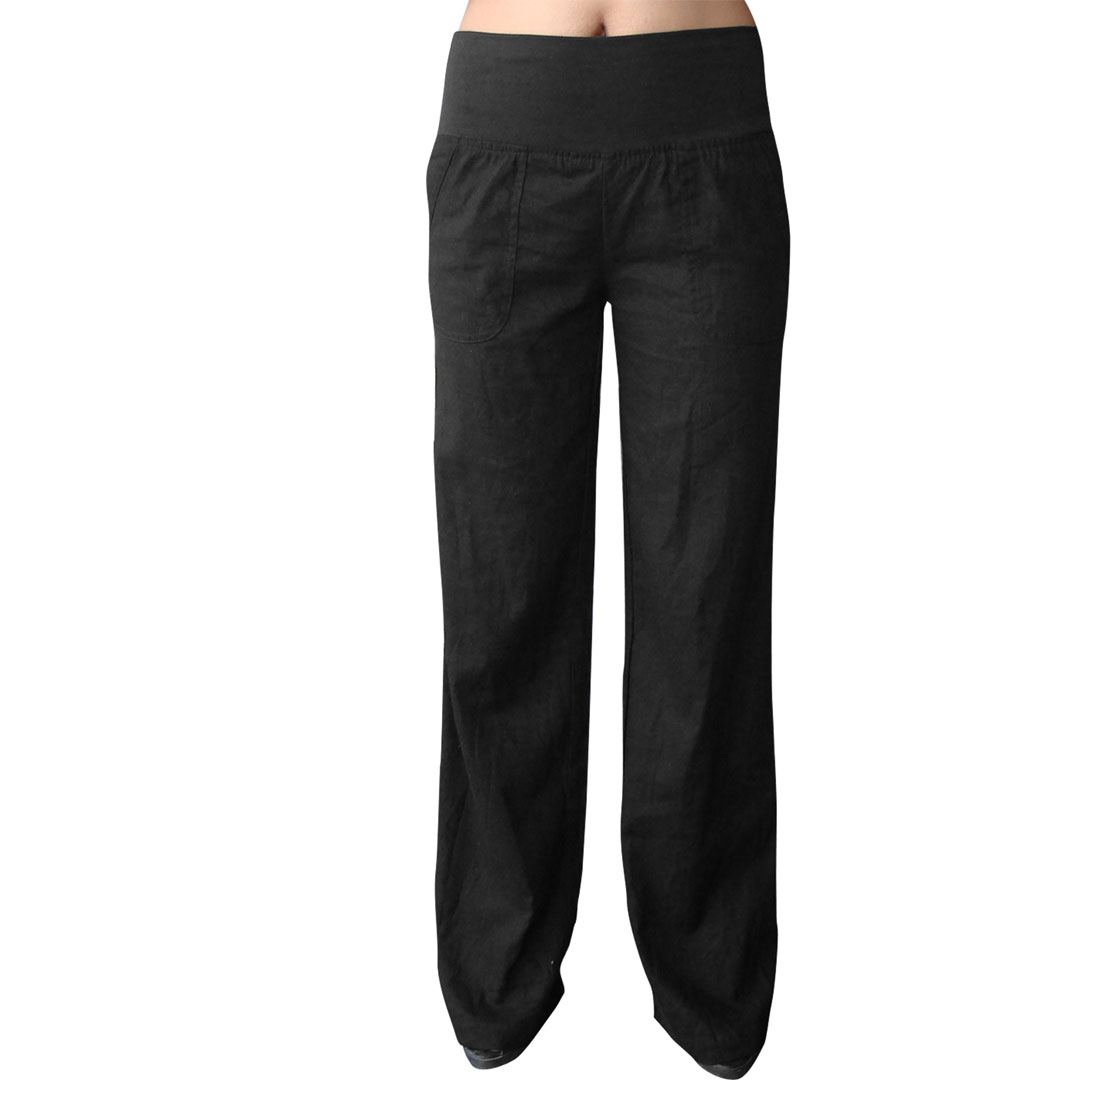 Woman Stylish Stretchy Waist Slant Pocket Loose Pants Trousers Black XL